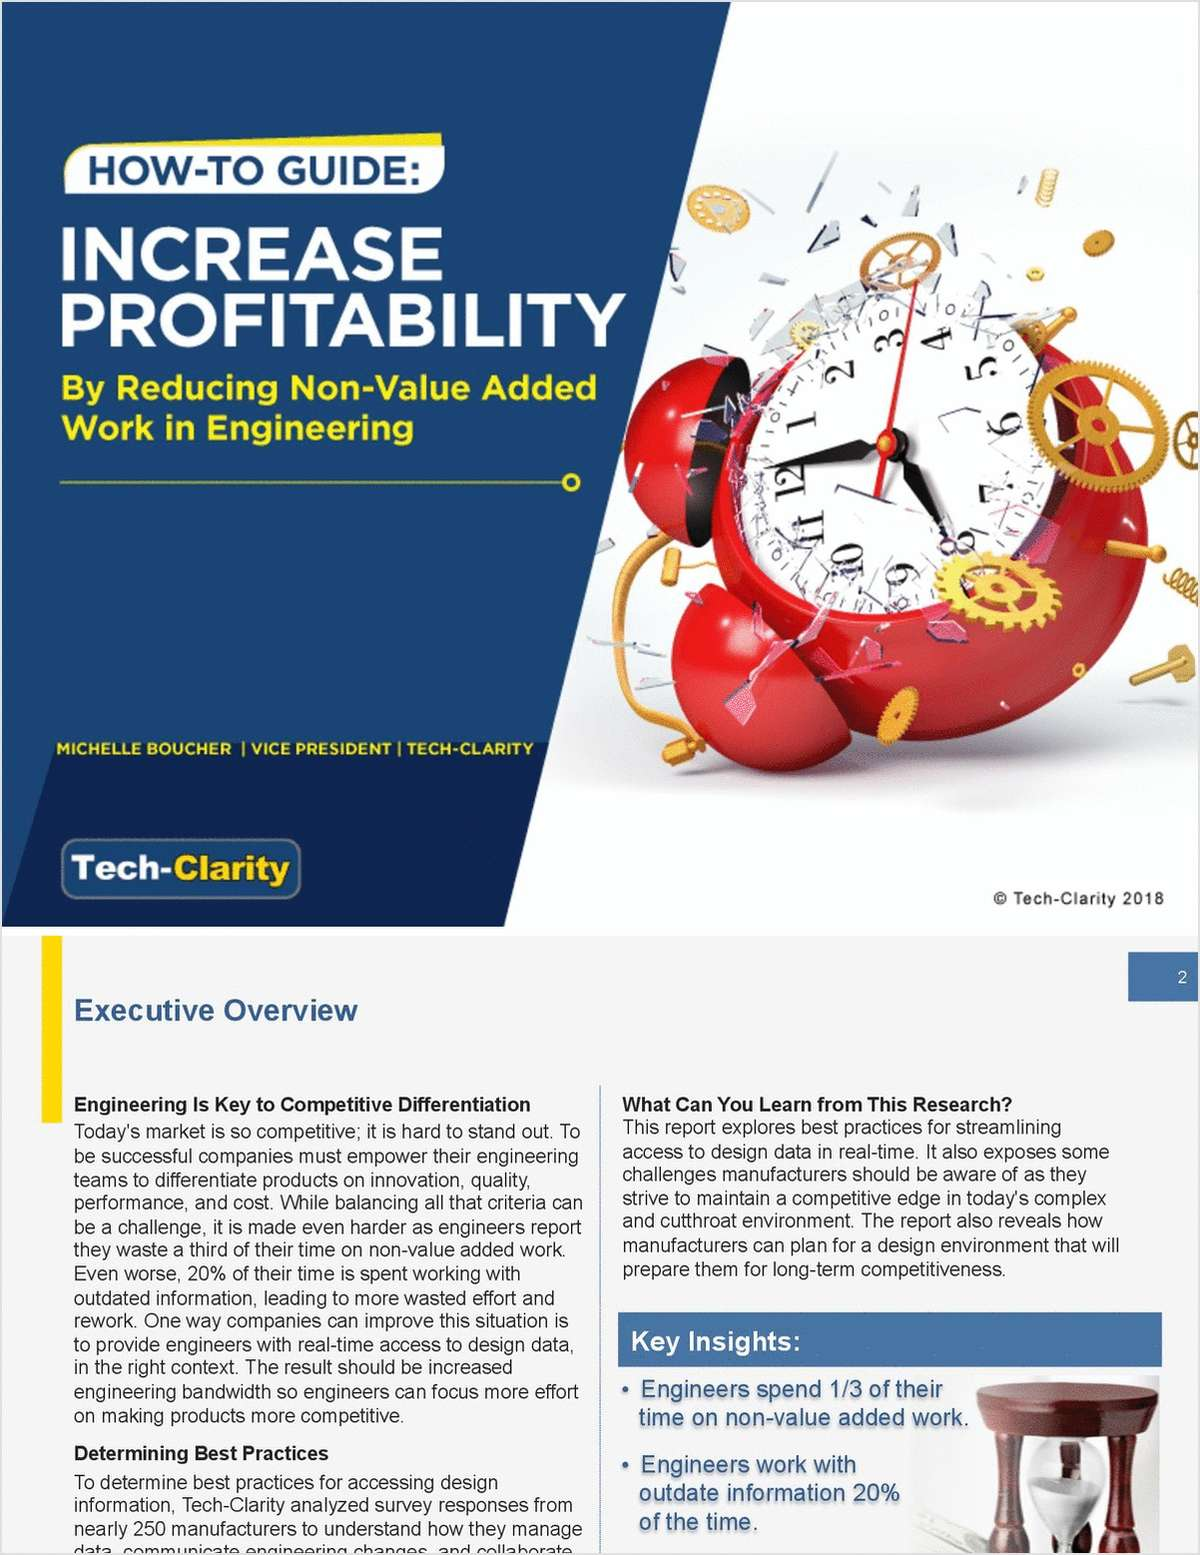 How-to Guide: Increase Profitability by Reducing Non-Value Added Work in Engineering